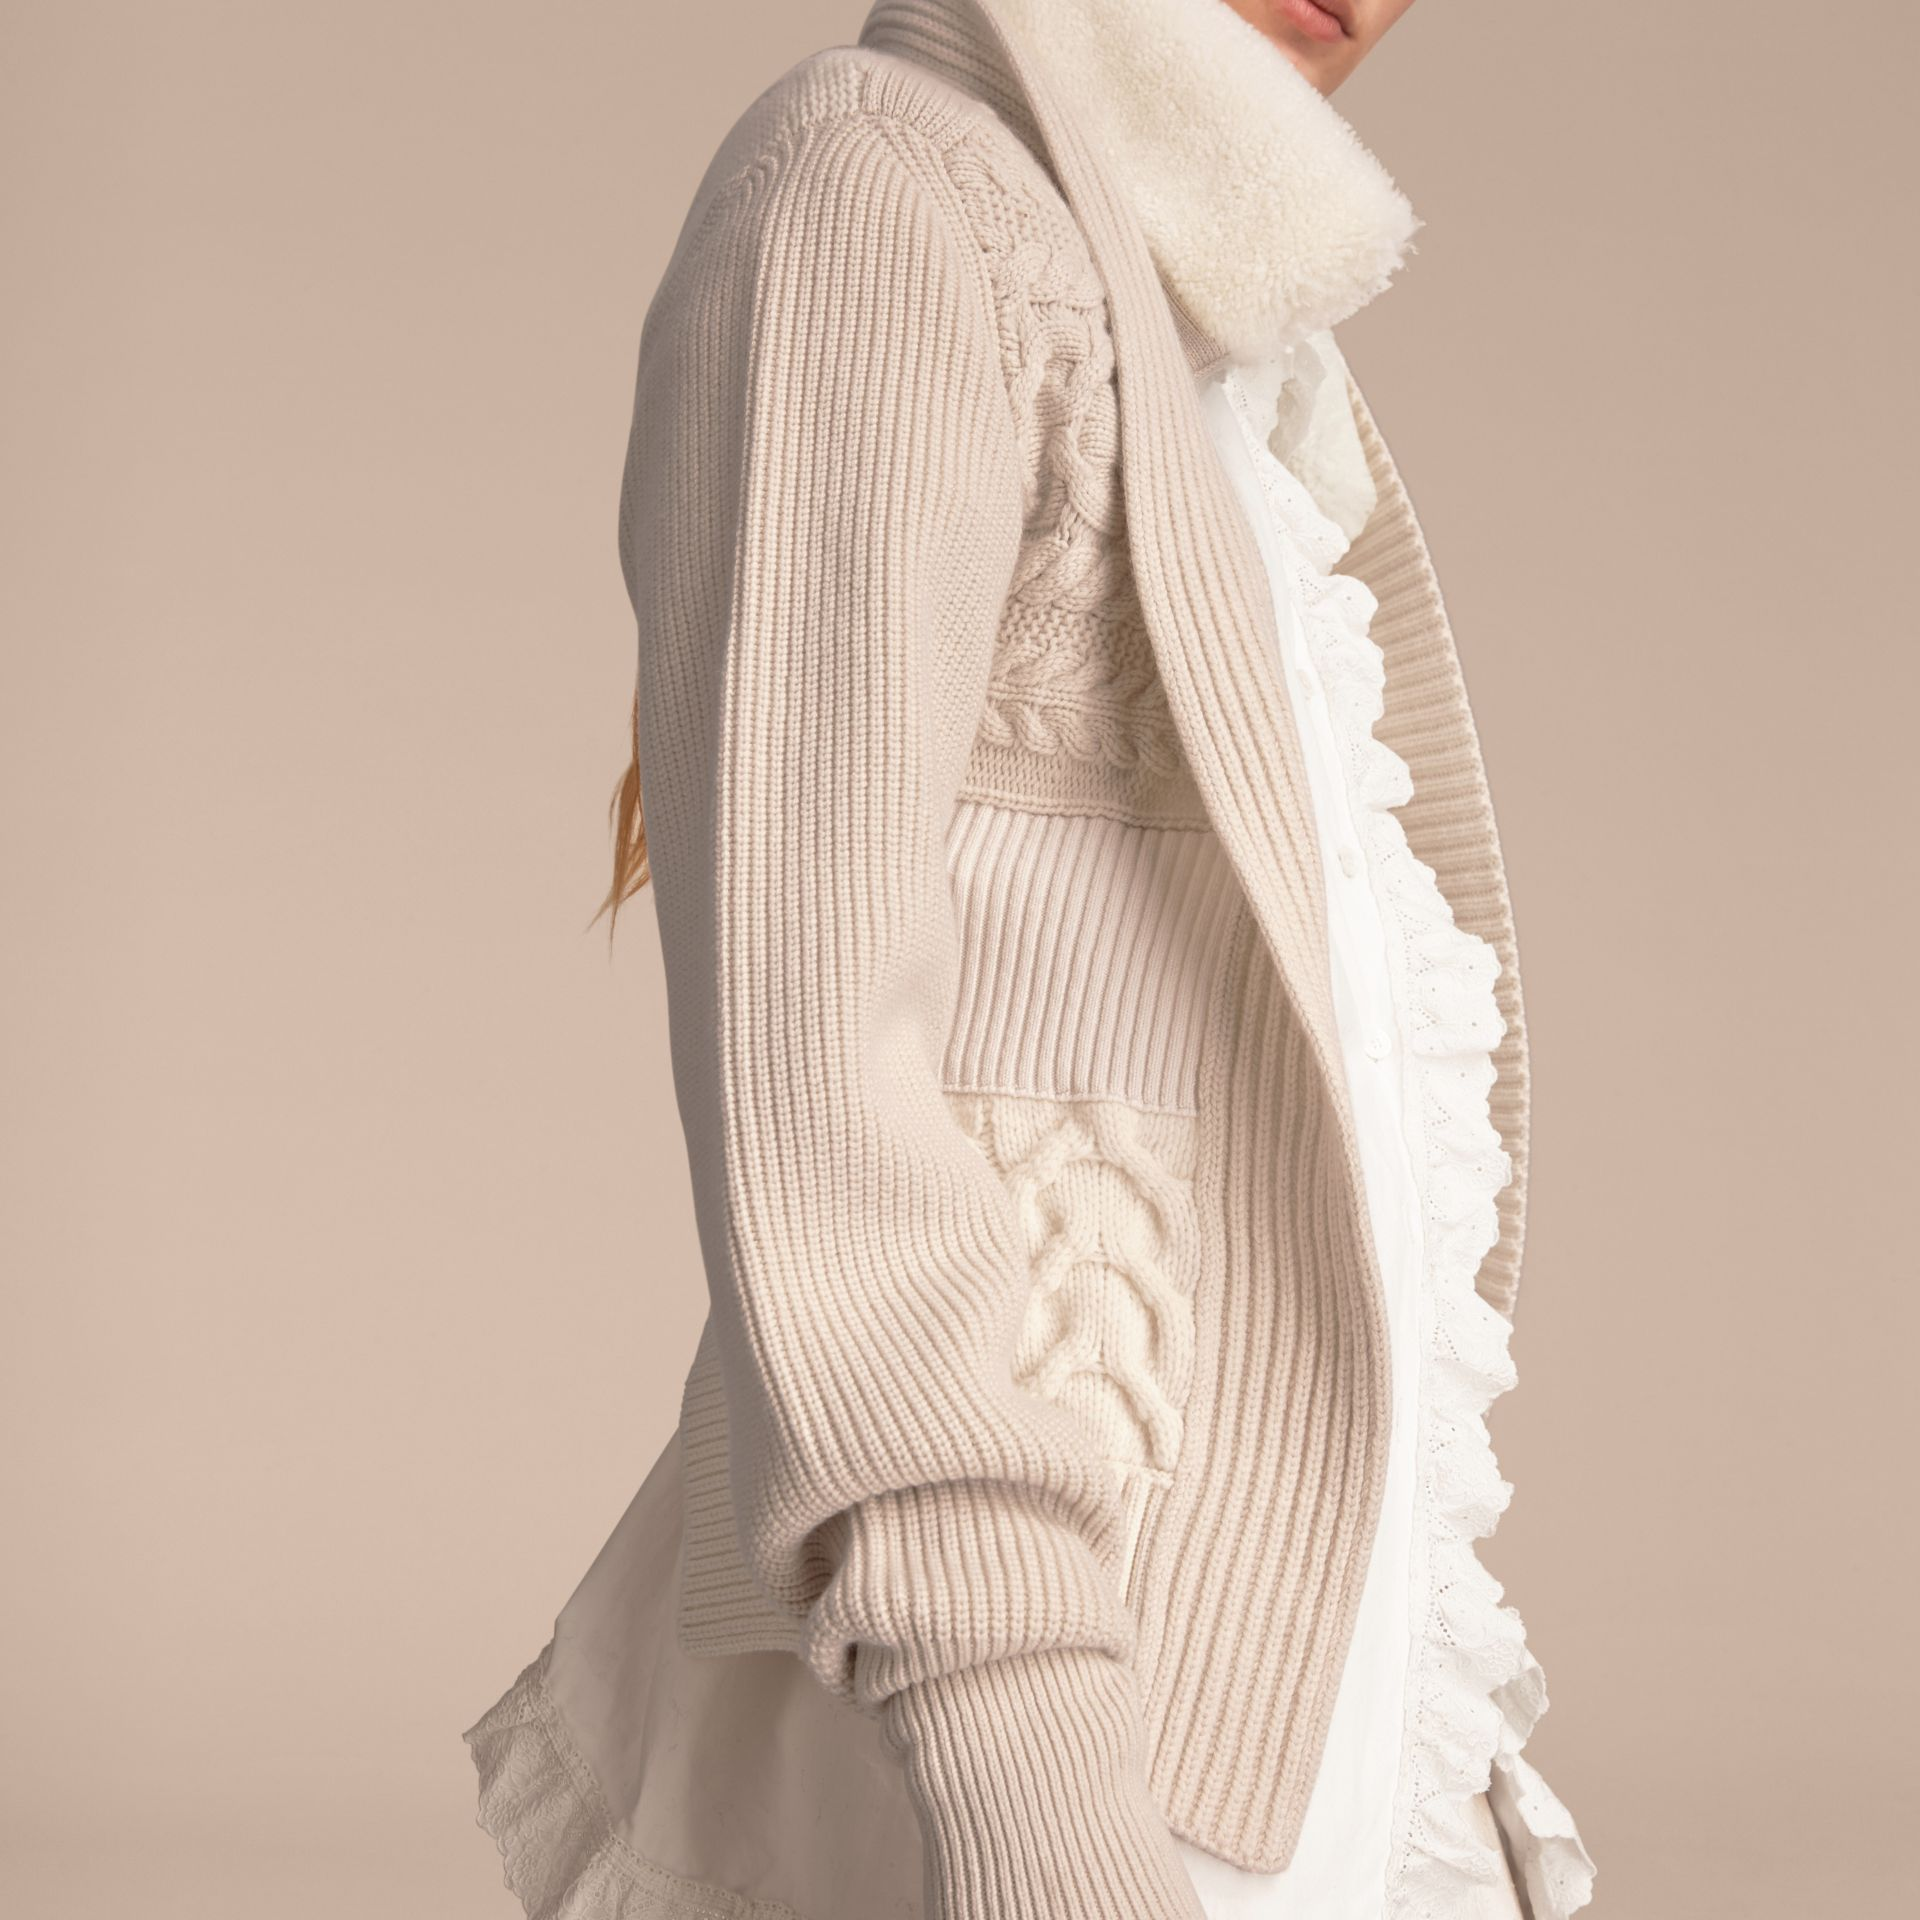 Shearling Collar Knitted Wool Cashmere Jacket in Natural White - Women | Burberry Canada - gallery image 6